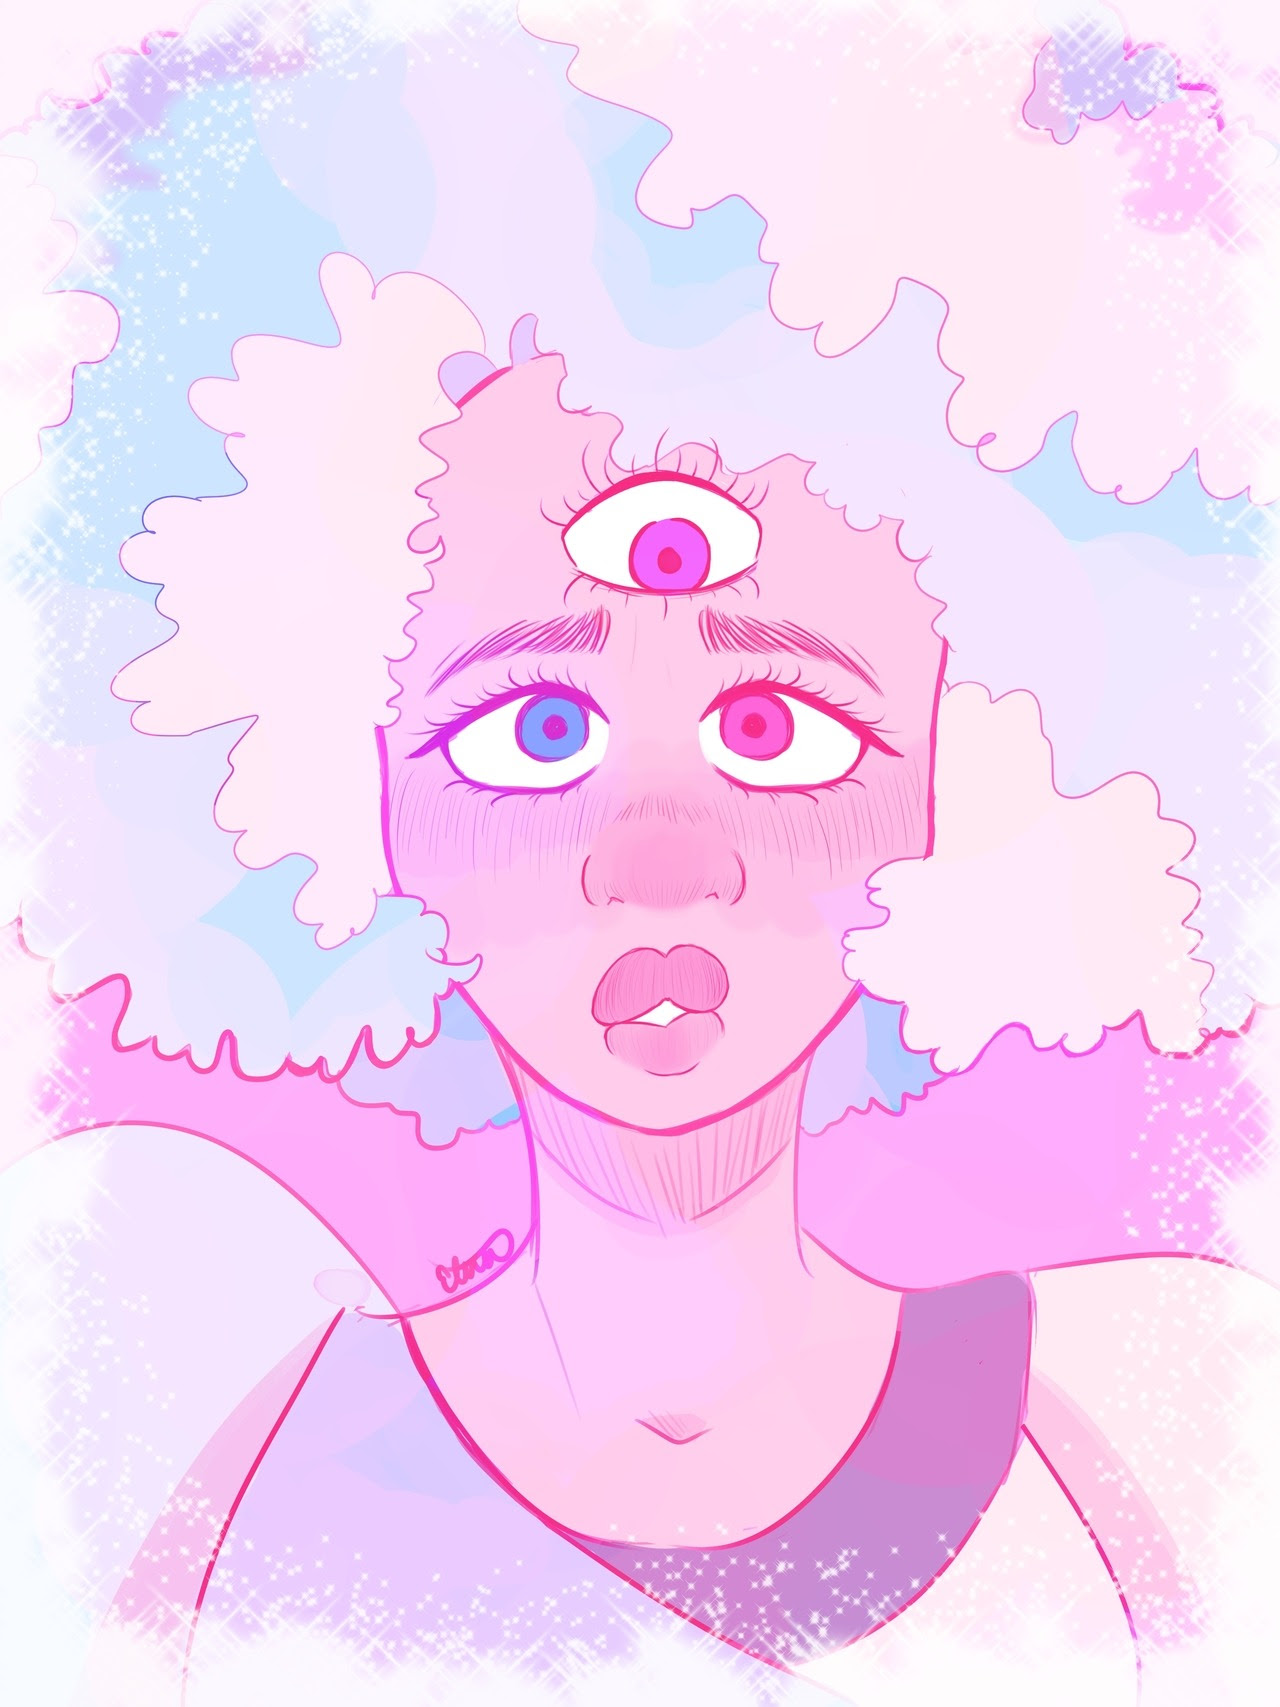 my obsession with cotton candy garnet continues to grow stronger